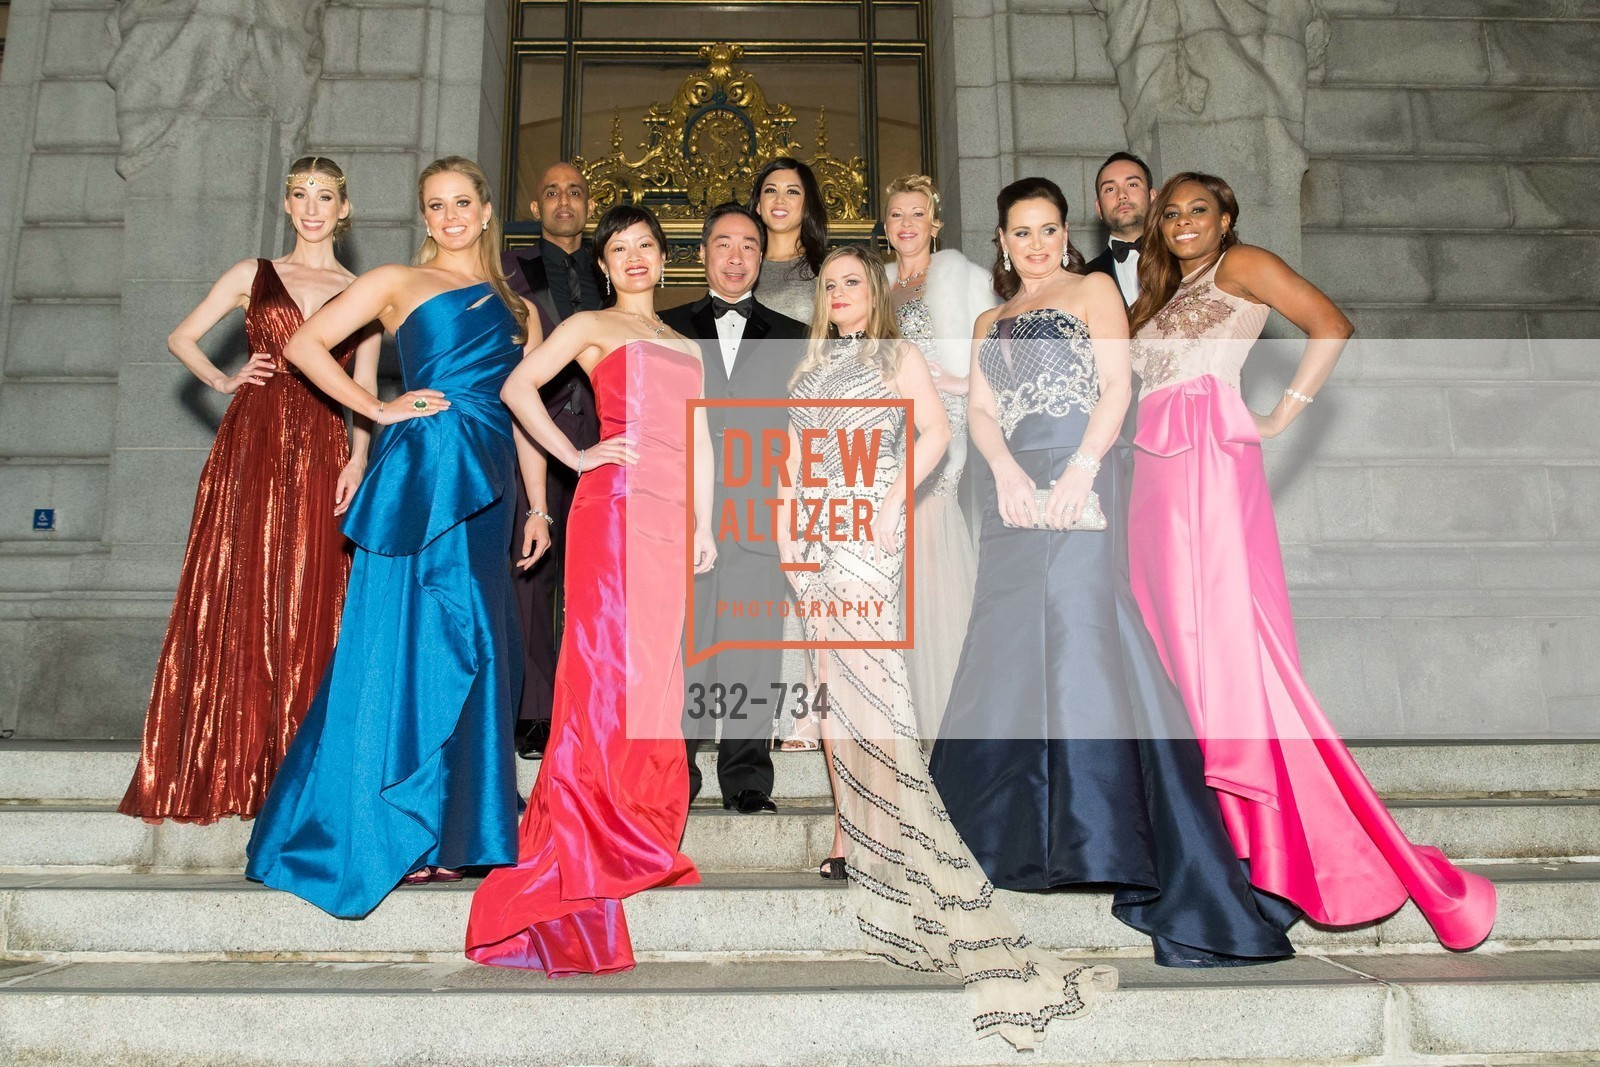 Maggie Winterfeldt Clark, Elizabeth Sgarrella, Sunil Sharma, Susan Lin, Wilson Yan, Emily Hu, Julie Hall, Lena Gikkas, Jane Burkhard, Christopher Correa, Vanessa Jean-Baptiste, San Francisco Ballet 2016 ENCORE! Opening Night Gala, San Francisco City Hall. 1 Dr Carlton B Goodlett Pl, January 21st, 2016,Drew Altizer, Drew Altizer Photography, full-service agency, private events, San Francisco photographer, photographer california